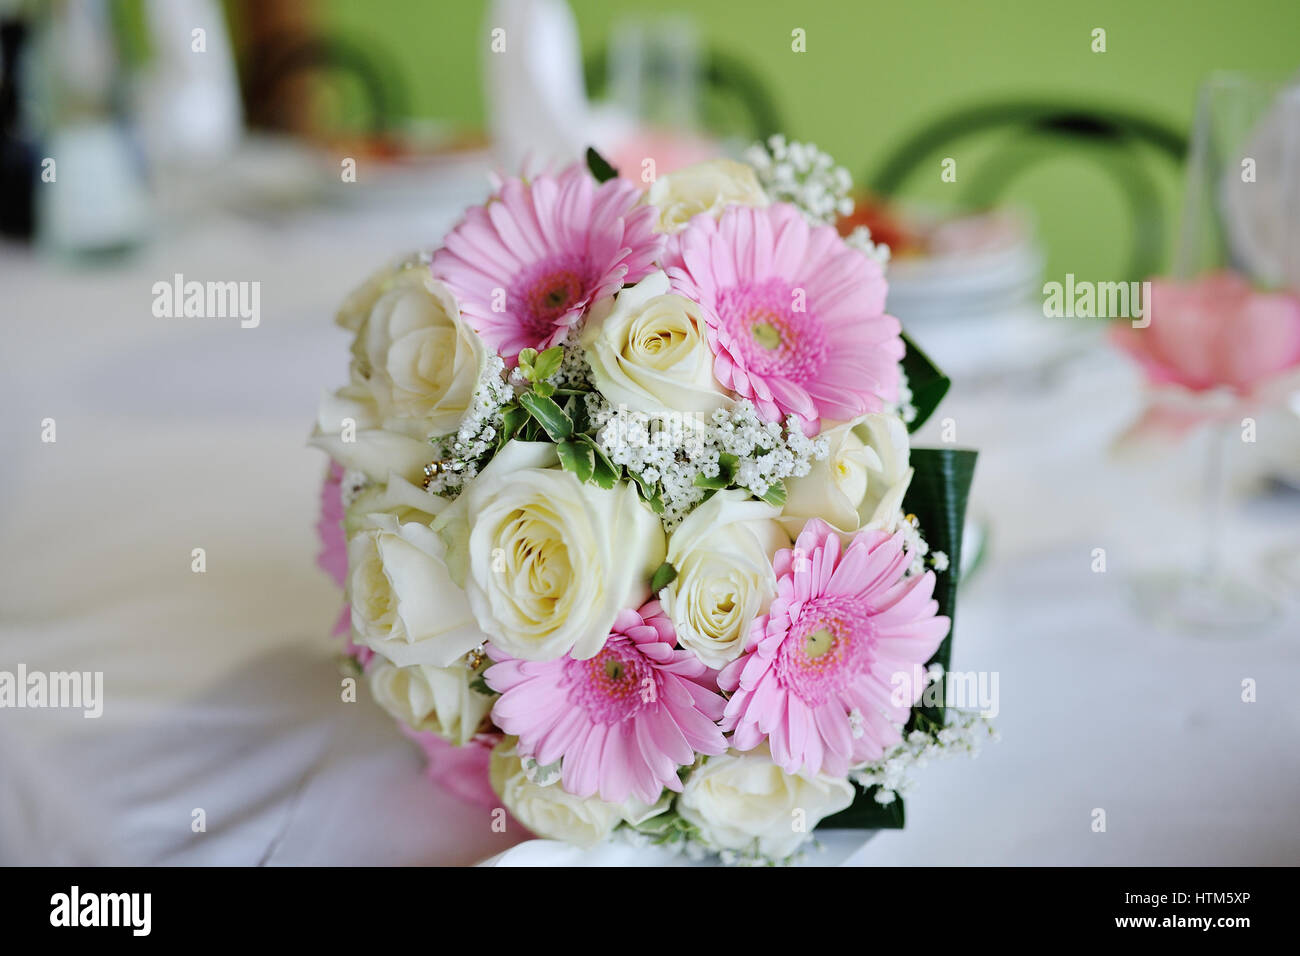 Hochzeitsstrauß Rosen Rosa Wedding Bouquet With White Roses And Pink Gerberas Stock